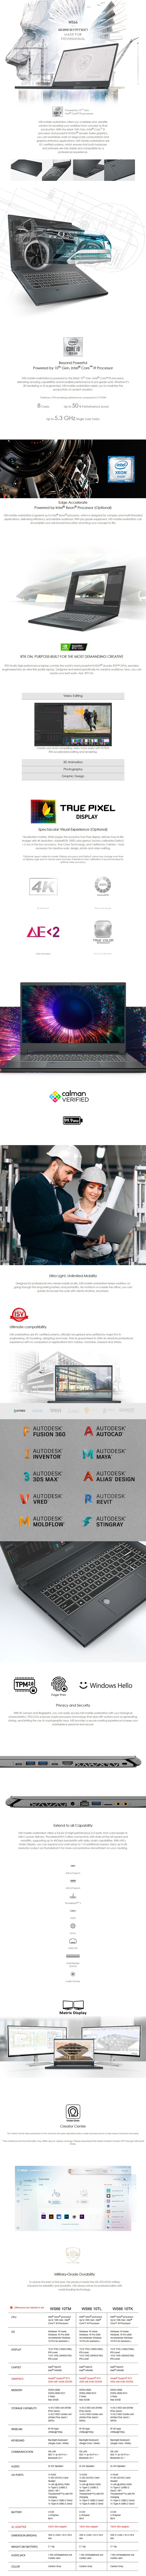 """MSI WS66 15.6"""" Mobile Workstation Series - Overview 1"""